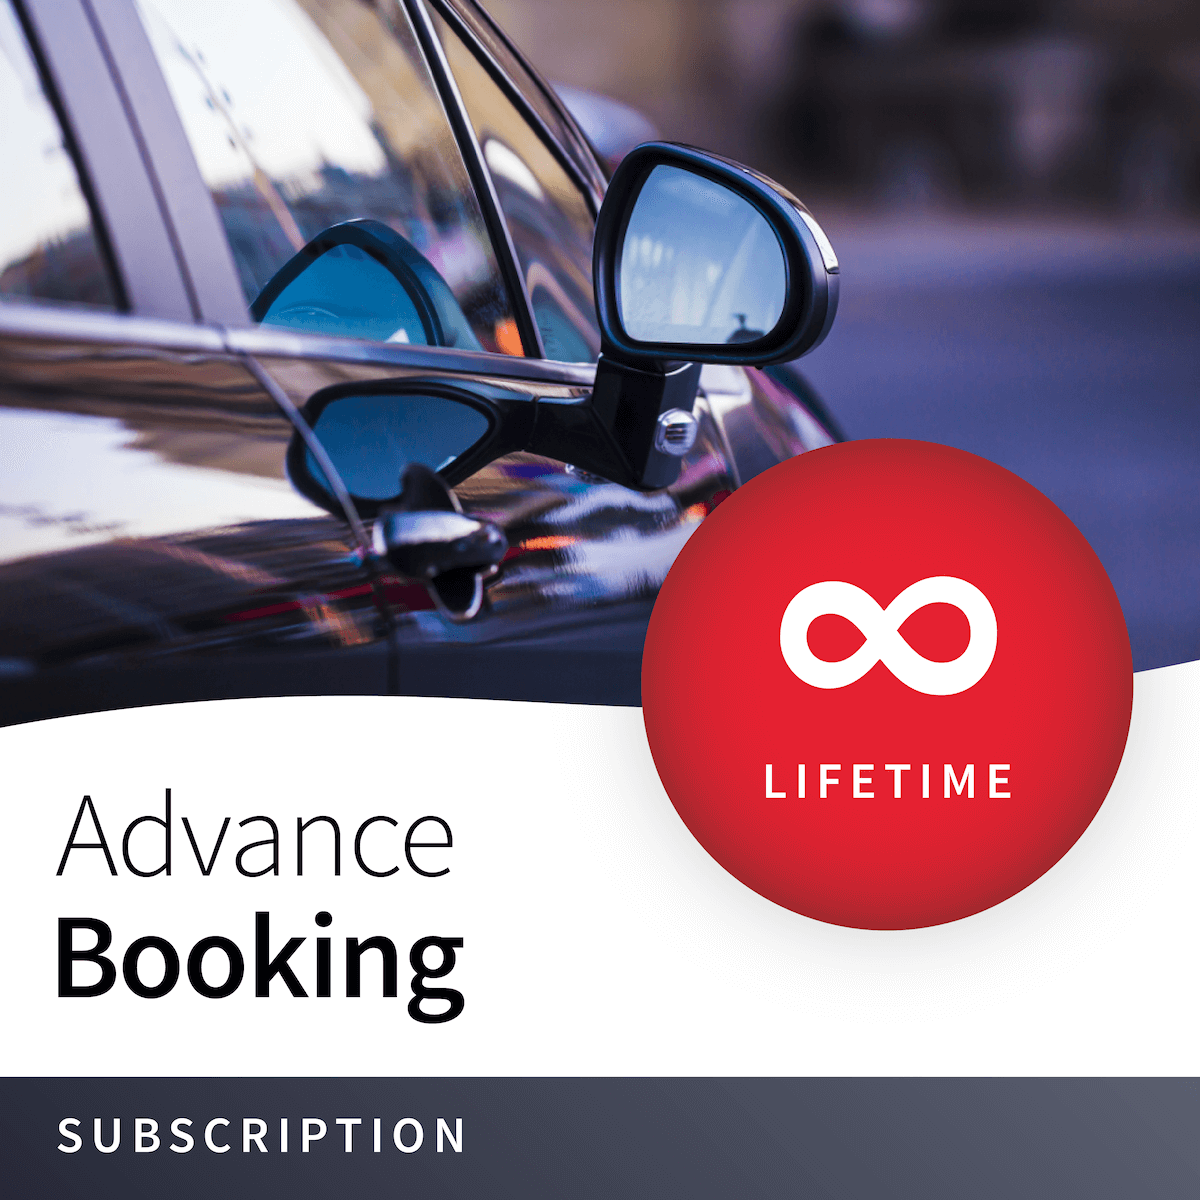 Priority Advance Booking – Lifetime 19